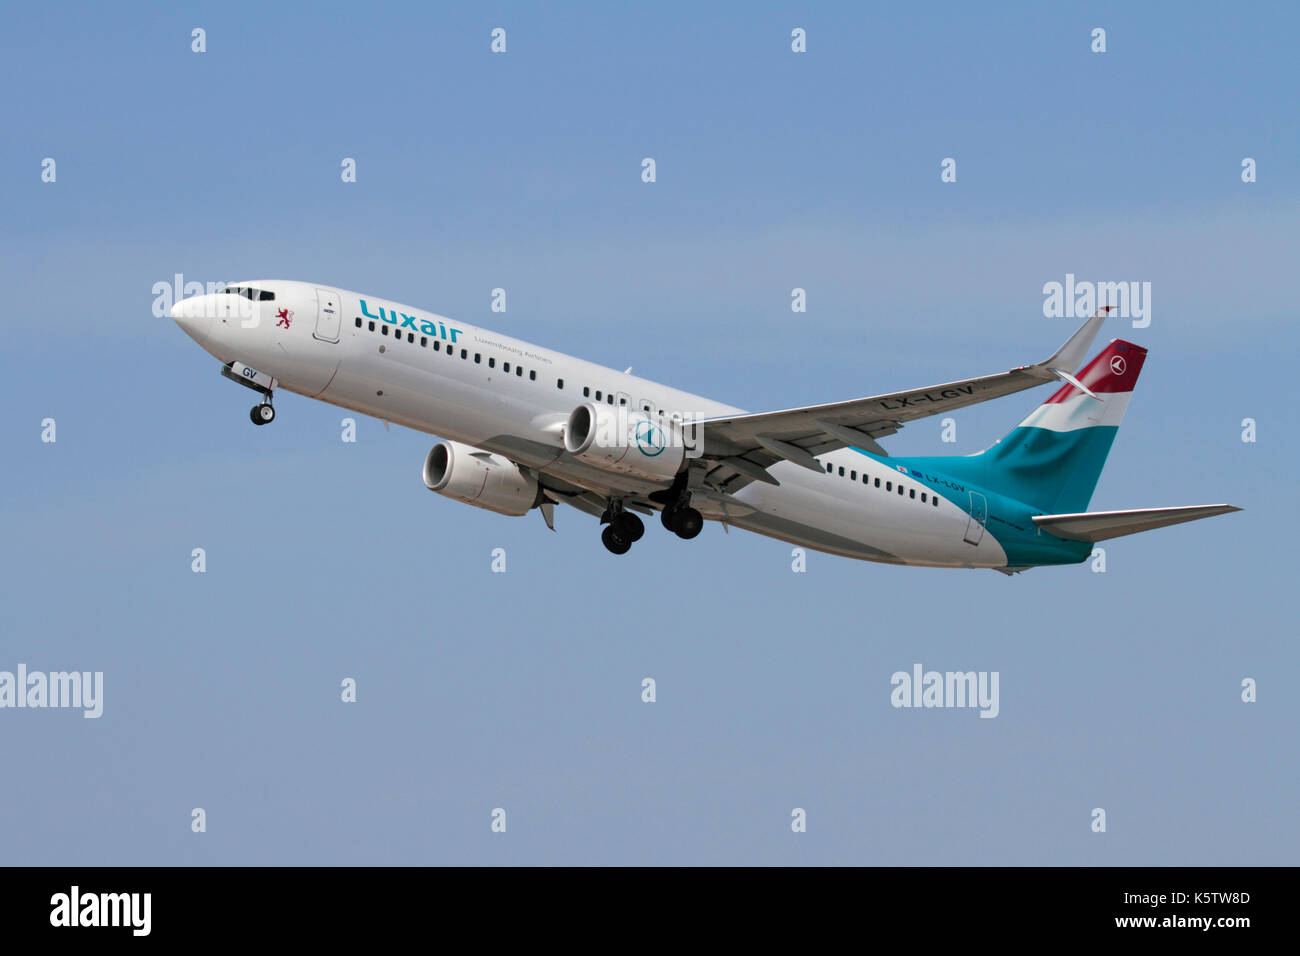 Commercial air travel. Luxair Luxembourg Airlines Boeing 737-800 (737 NG or Next Generation) passenger jet plane on takeoff Stock Photo